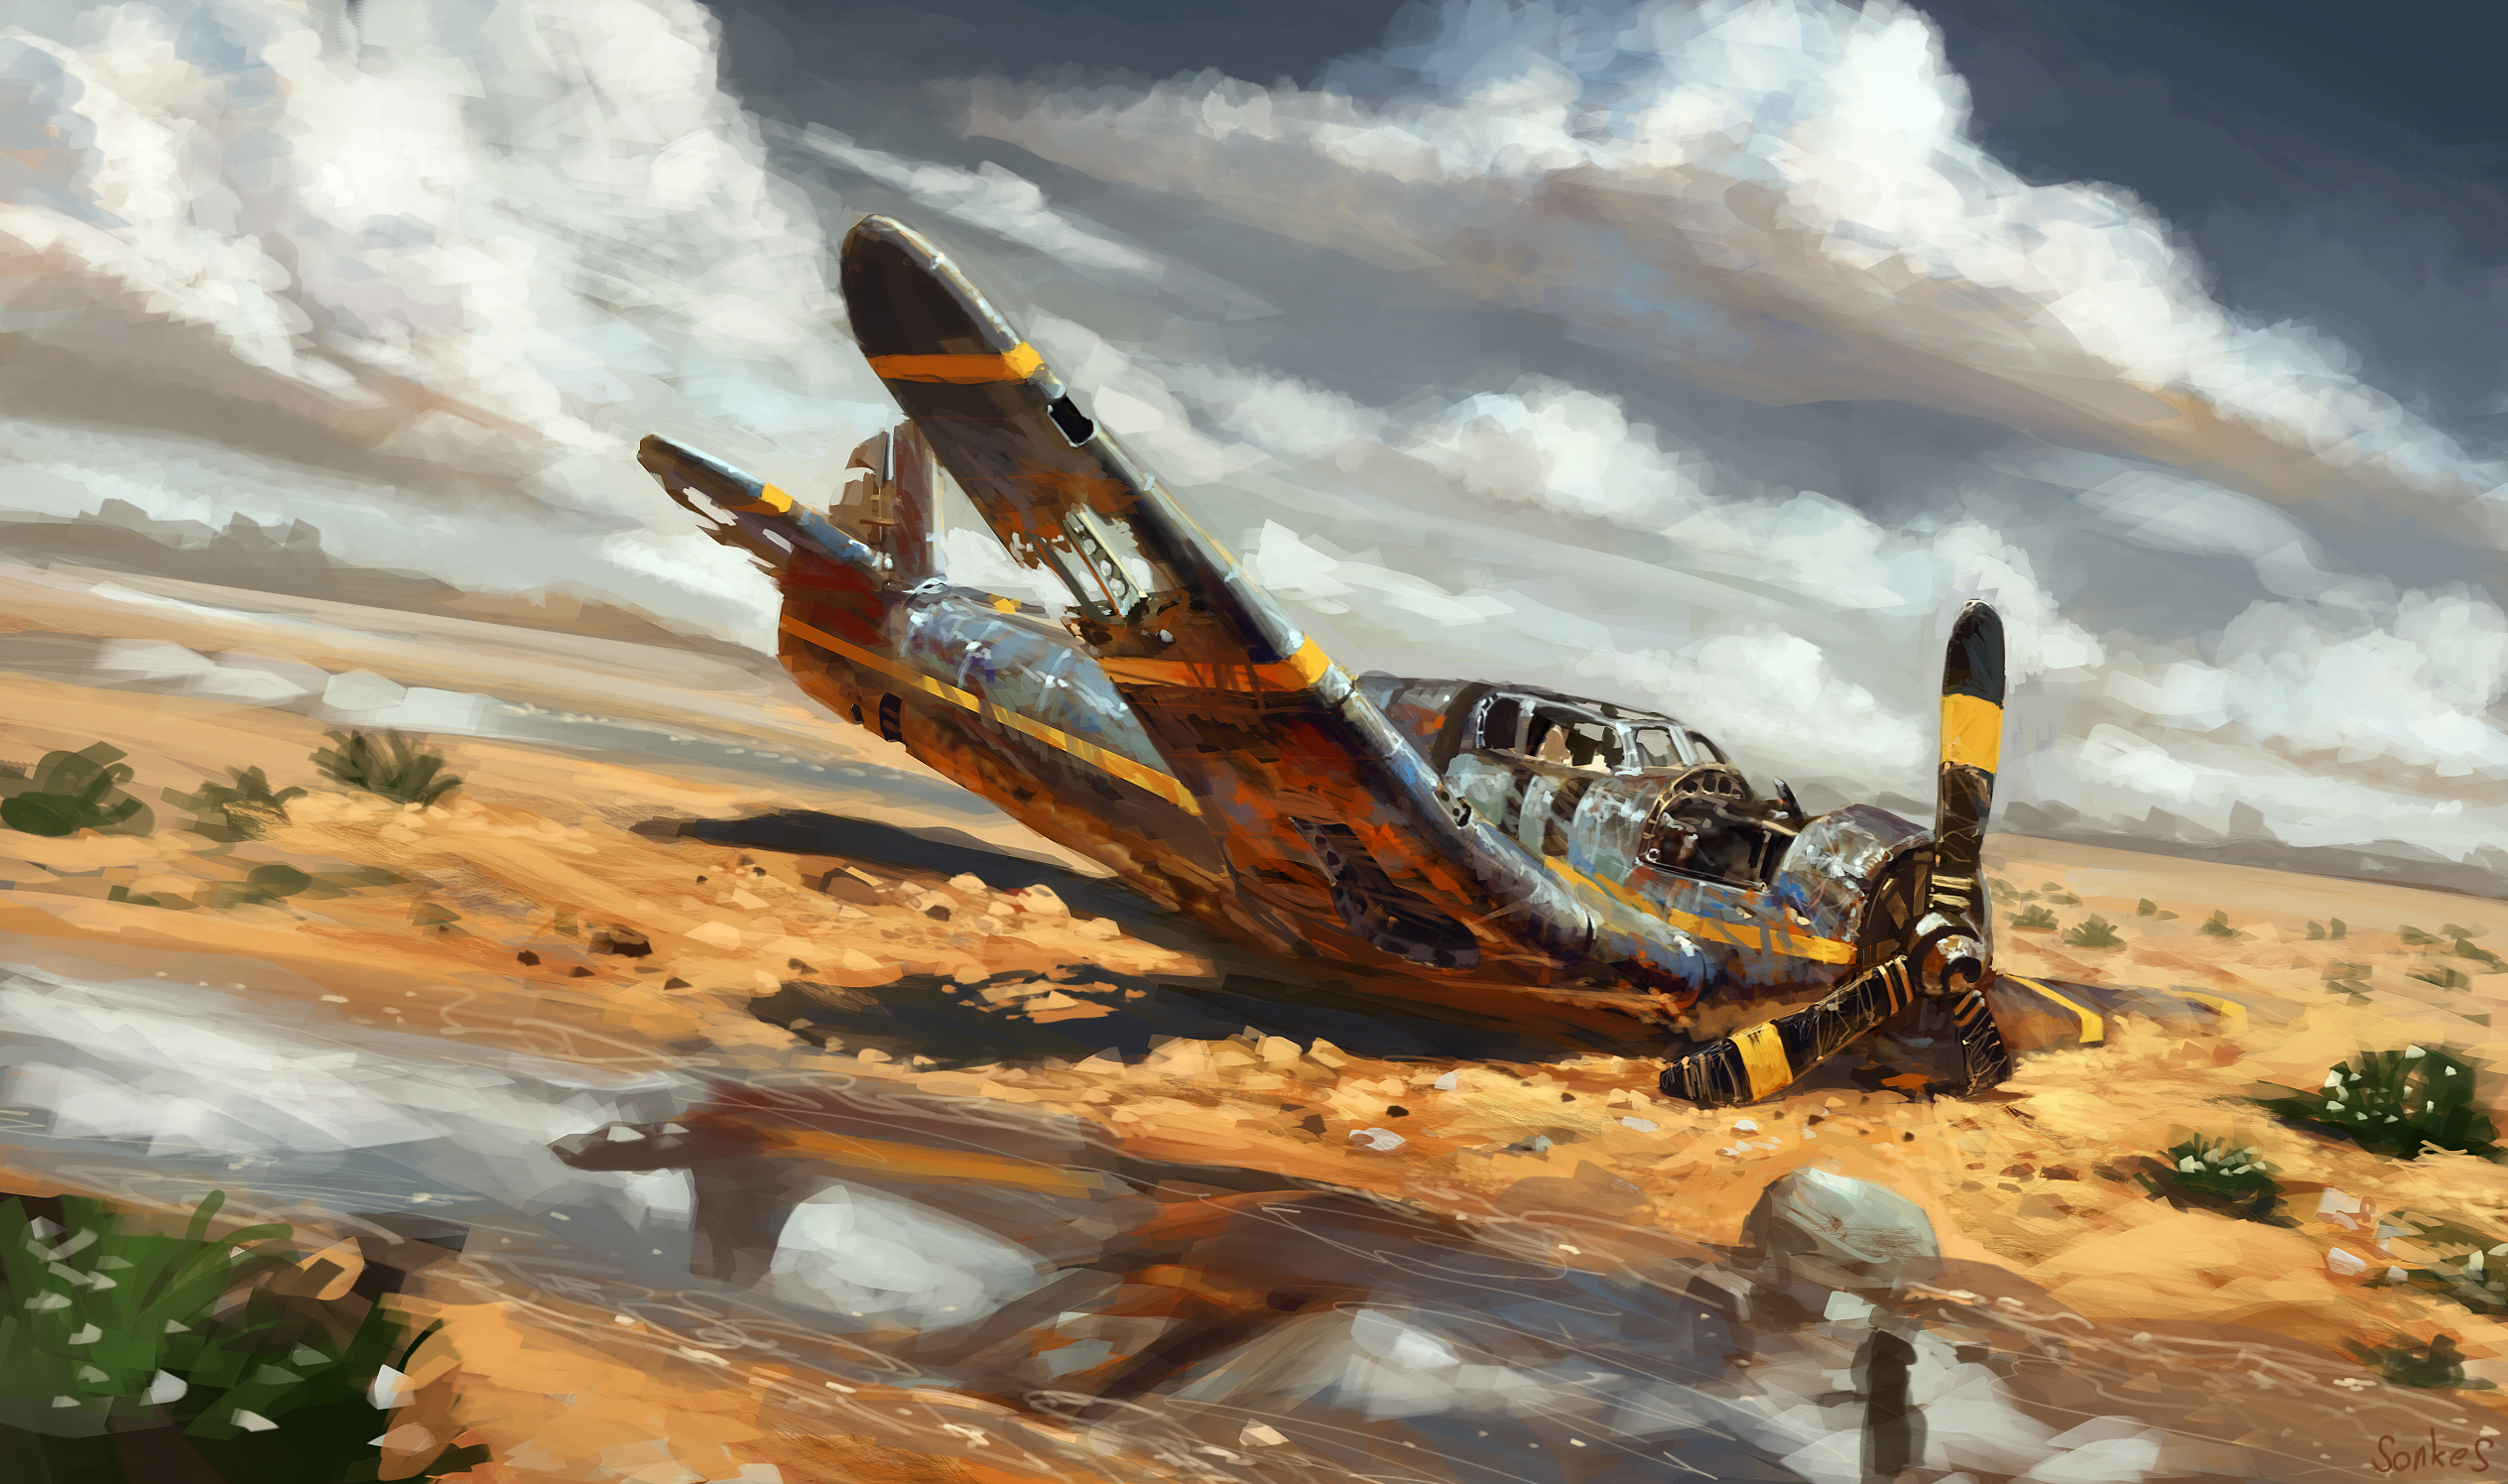 deserts plane crash by real sonkes wallpapers photos pictures 2528x1496